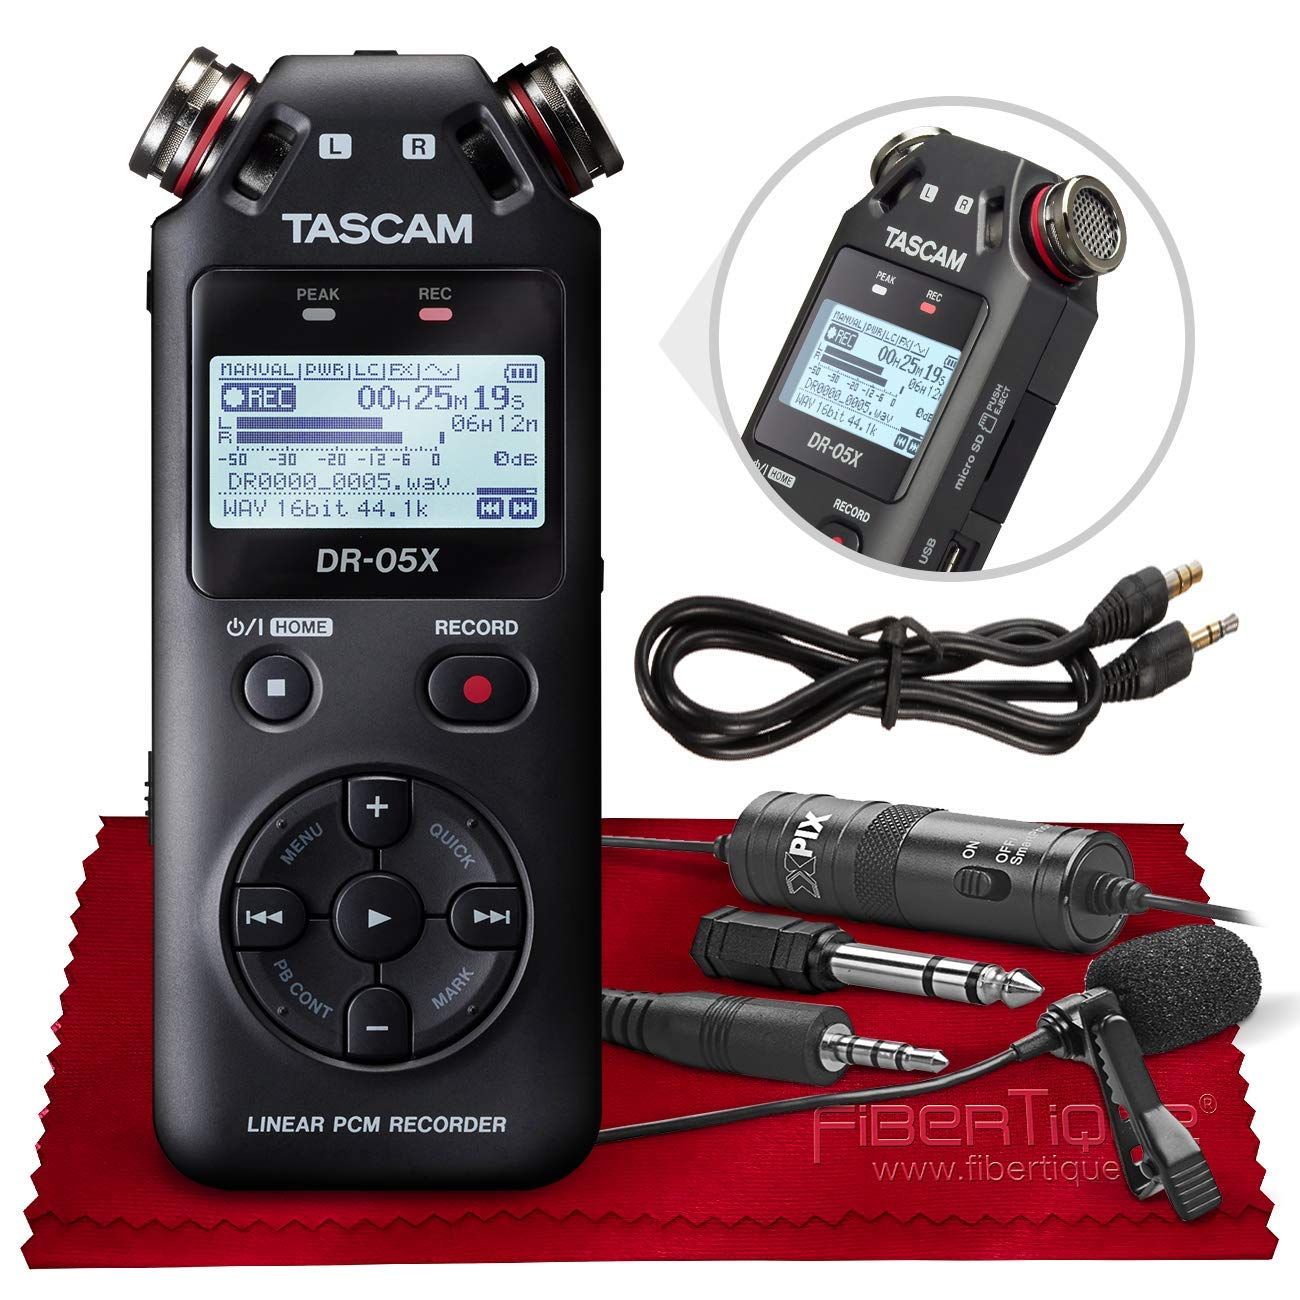 Tascam DR-05X Stereo Handheld Digital Audio Recorder with USB Audio Interface + XPIX Lav Microphone + Basic Accessories Bundle